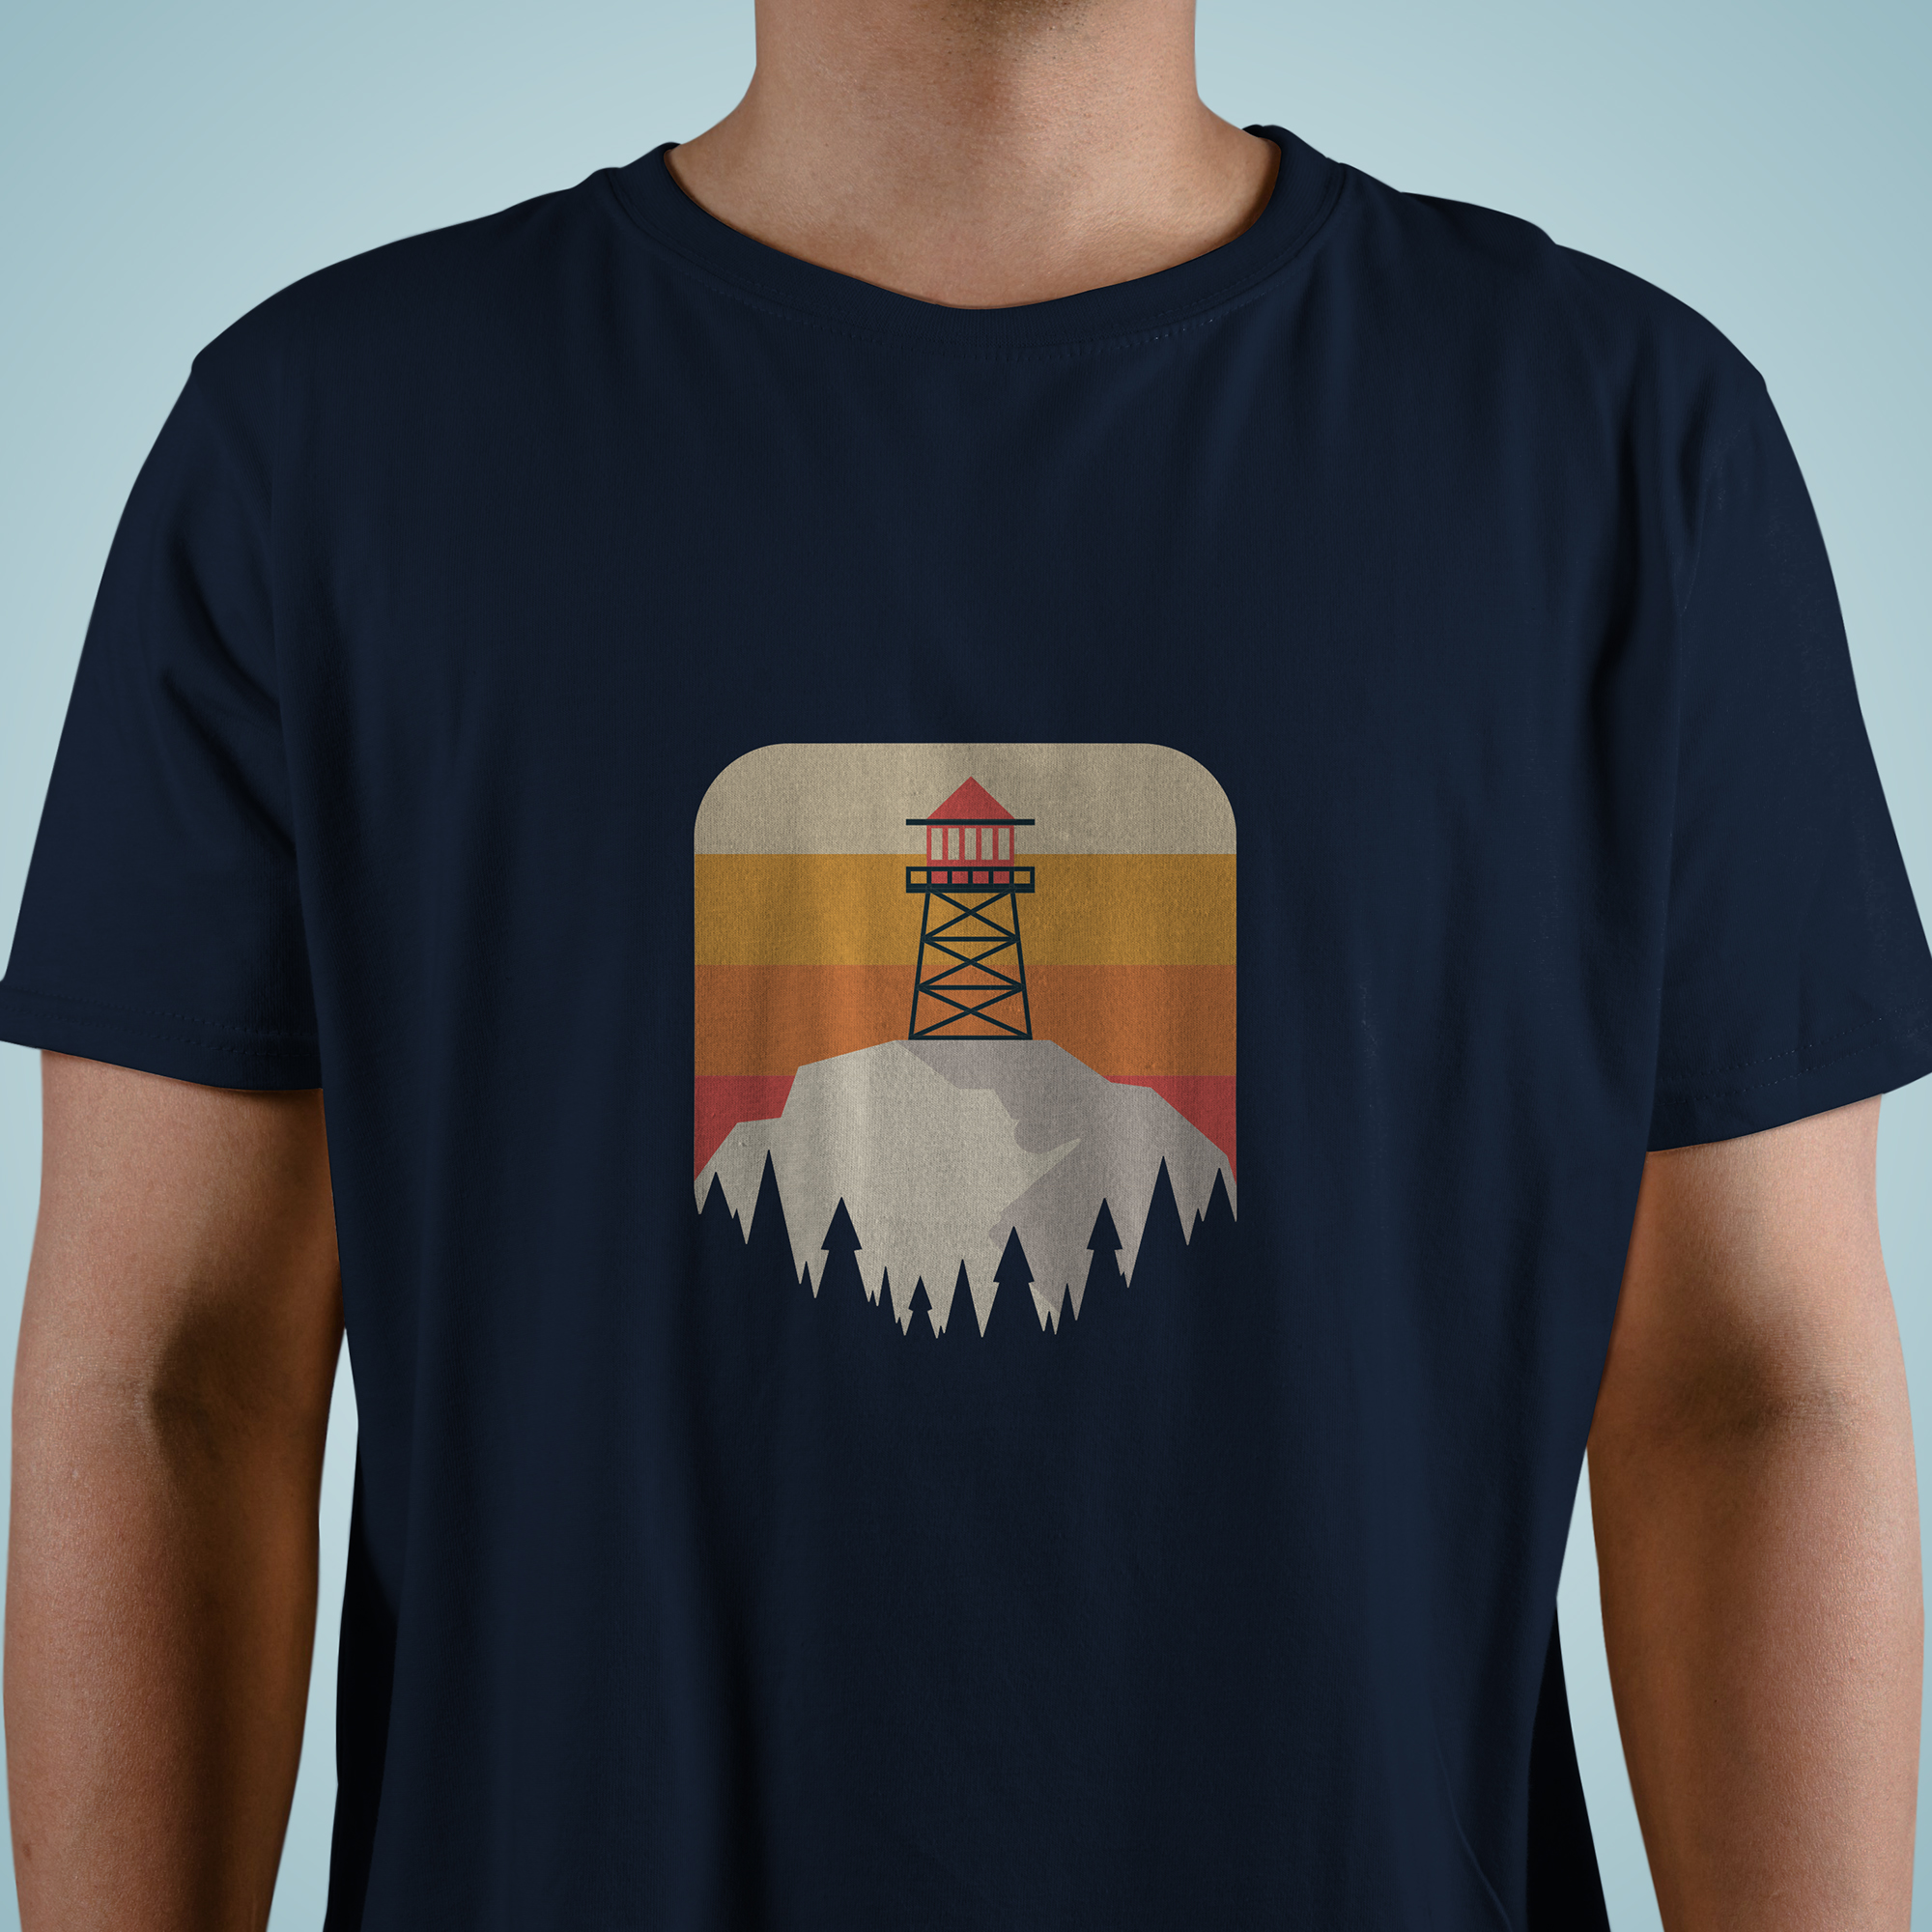 Firewatch_Shirt_ArtemDesigns.jpg